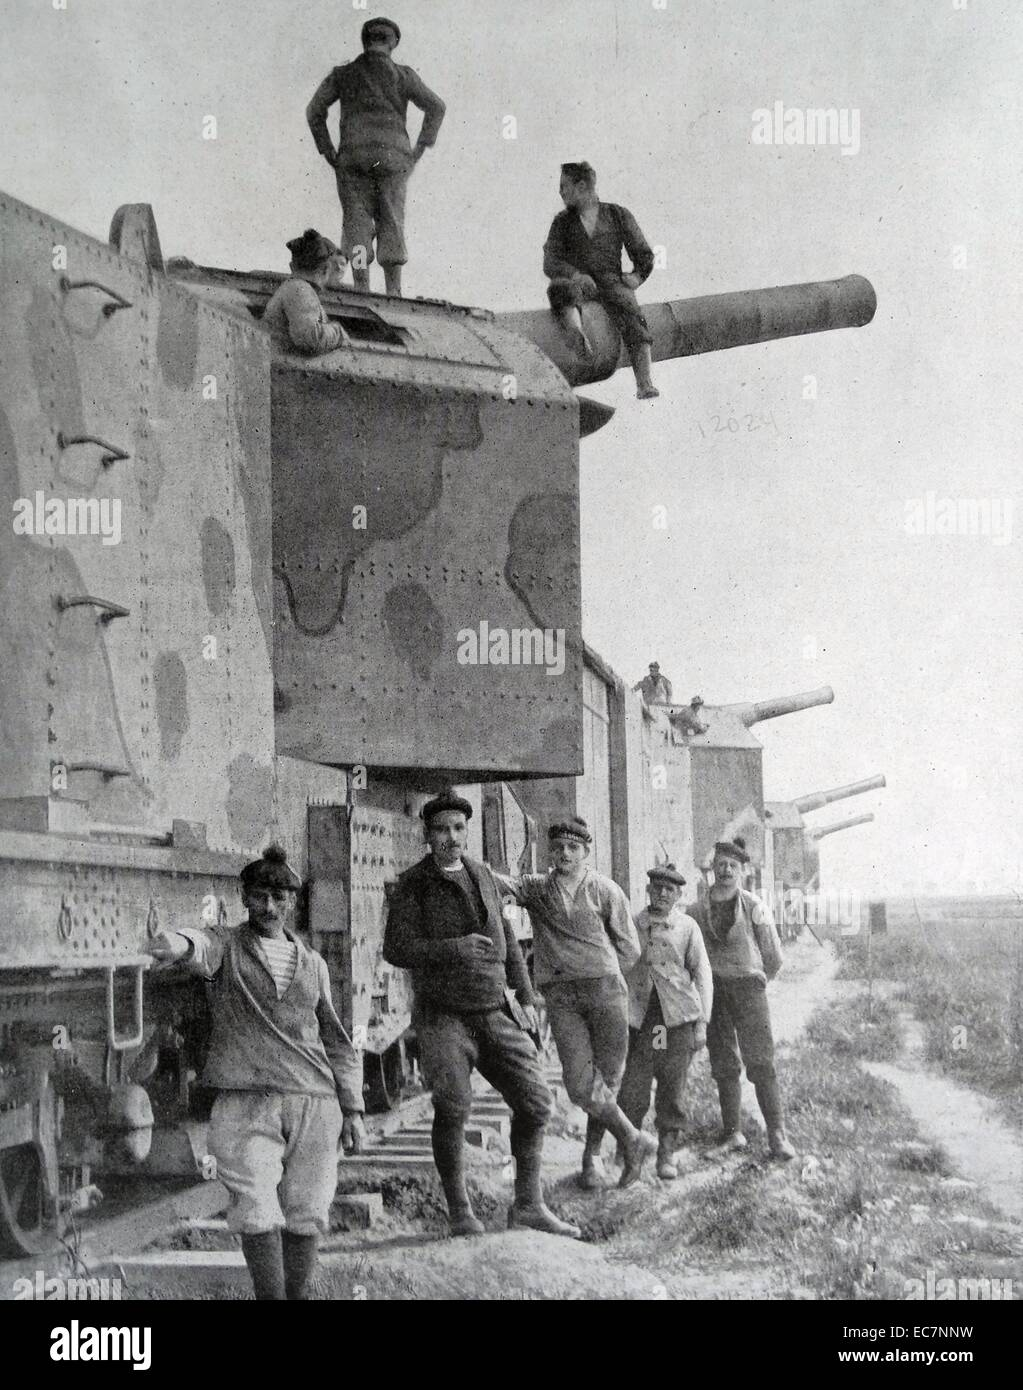 French Railway mounted cannons during World war One 1917 - Stock Image